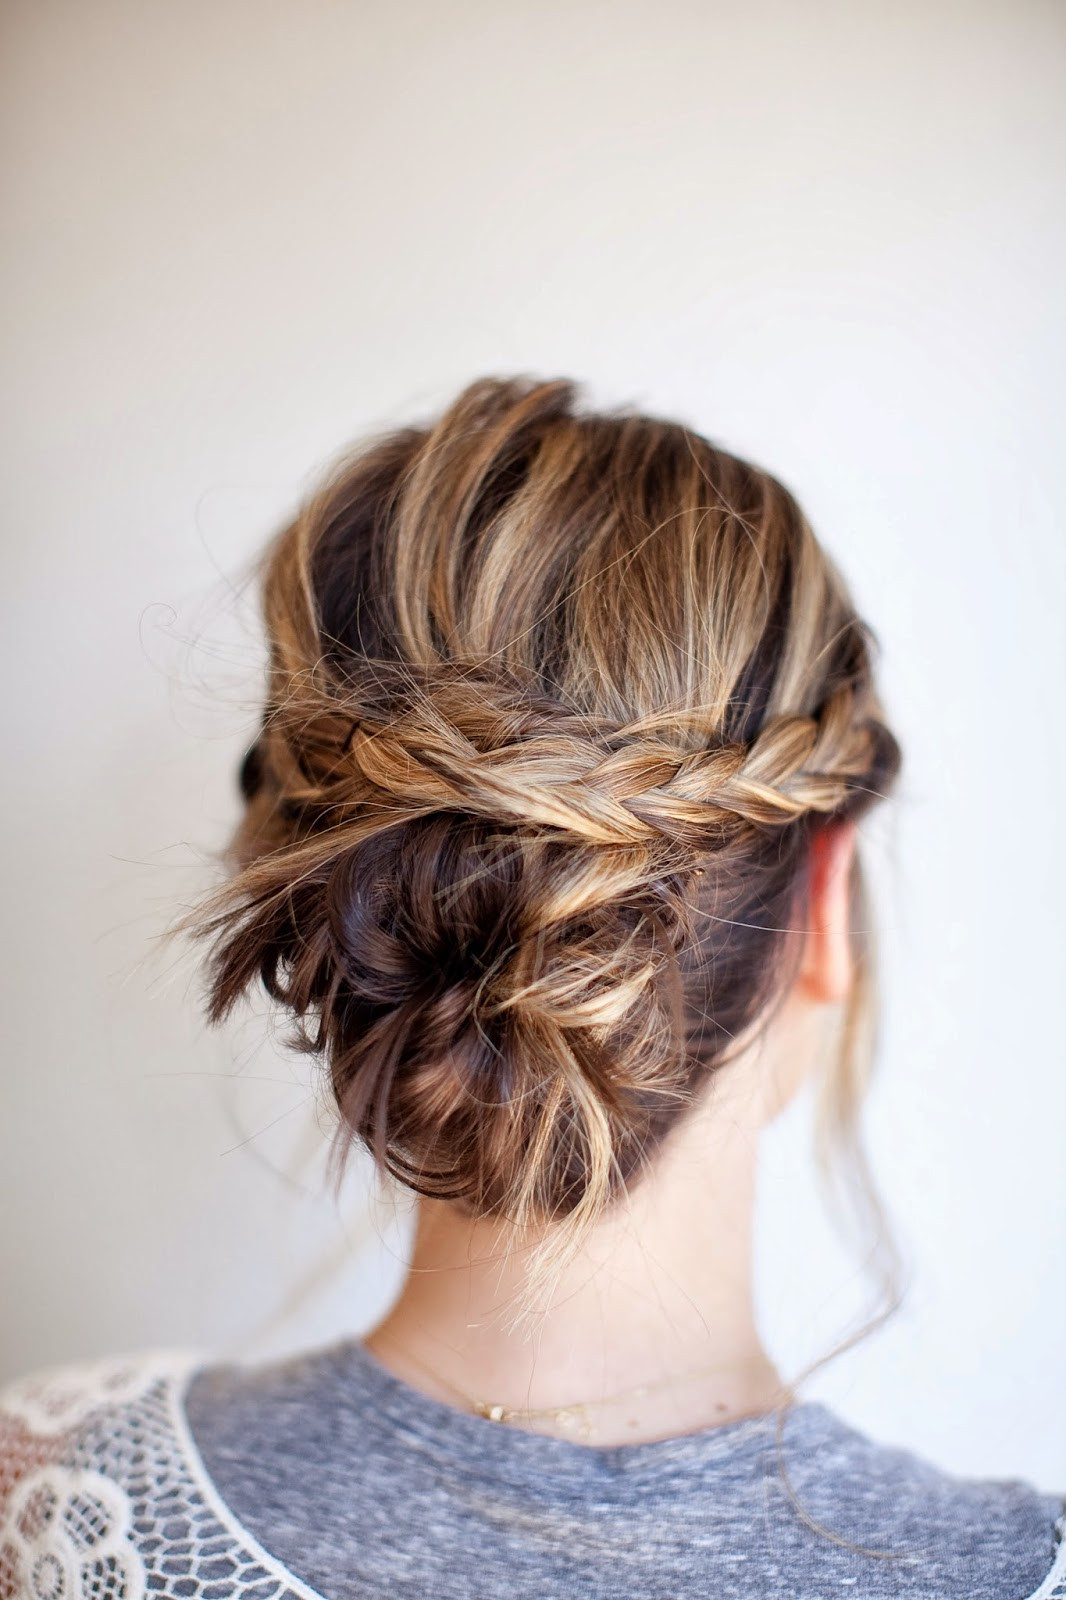 Best ideas about DIY Wedding Hairstyles . Save or Pin TESSA RAYANNE THREE DIY Bridal Hair Tutorials Now.